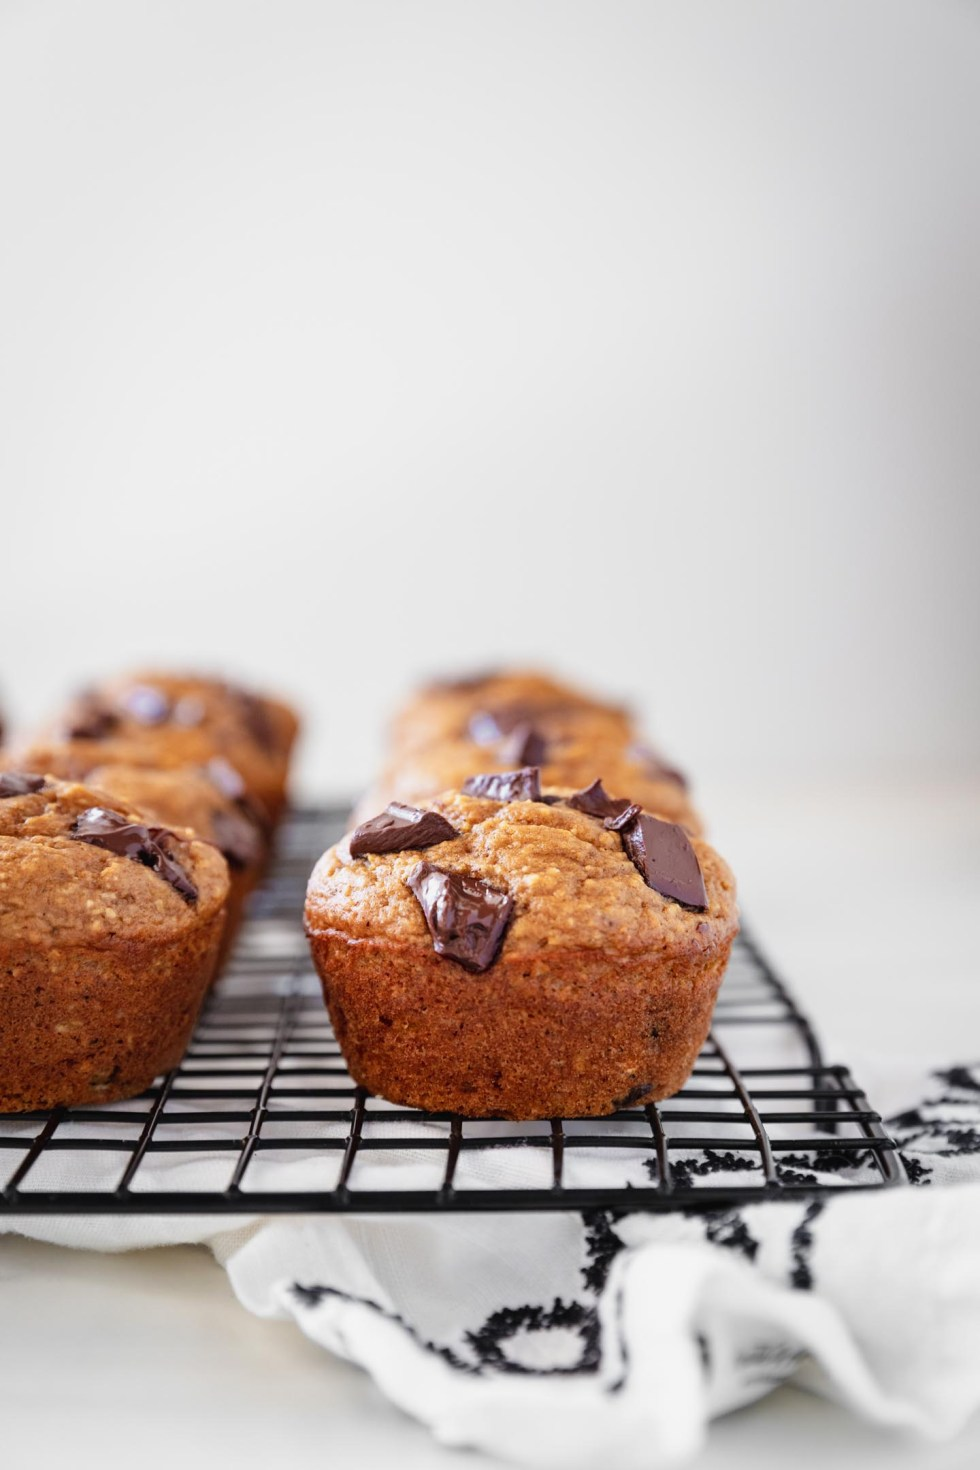 Close-up view of a pumpkin chocolate chip muffin